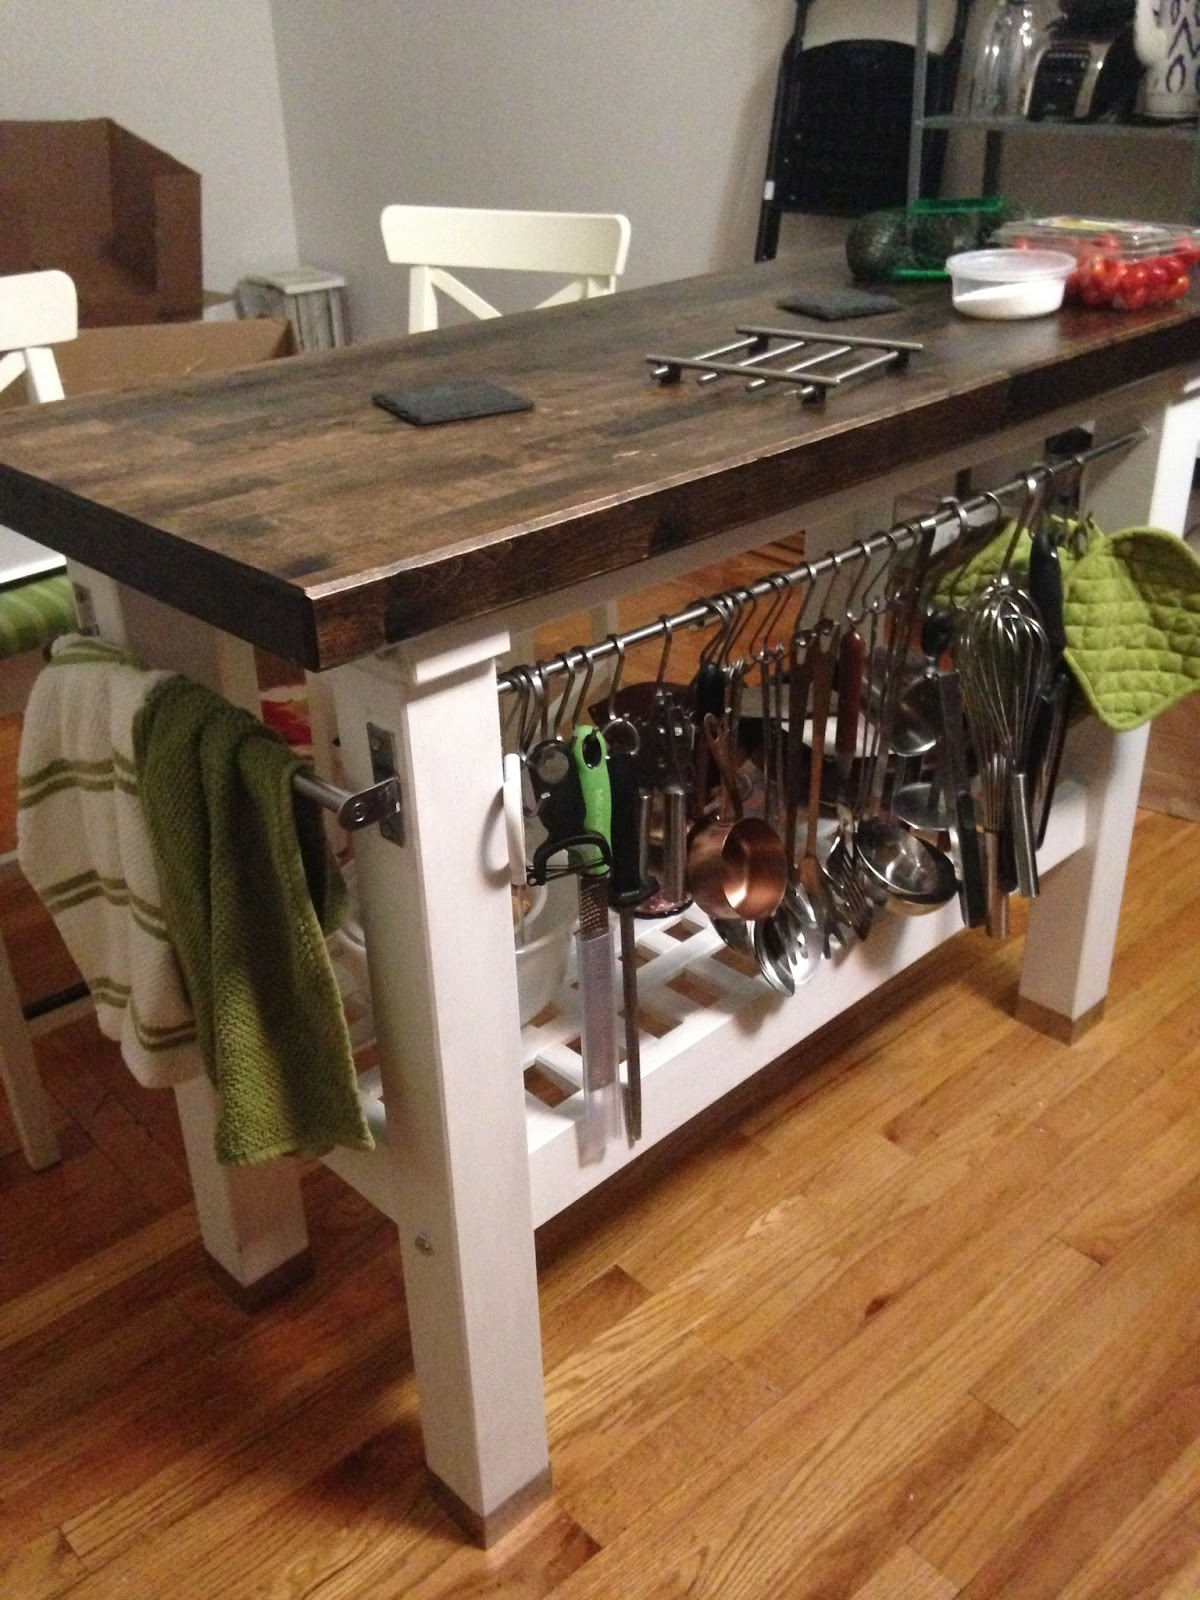 Bake and Baste How to Stain and Finish a Rustic Kitchen Island